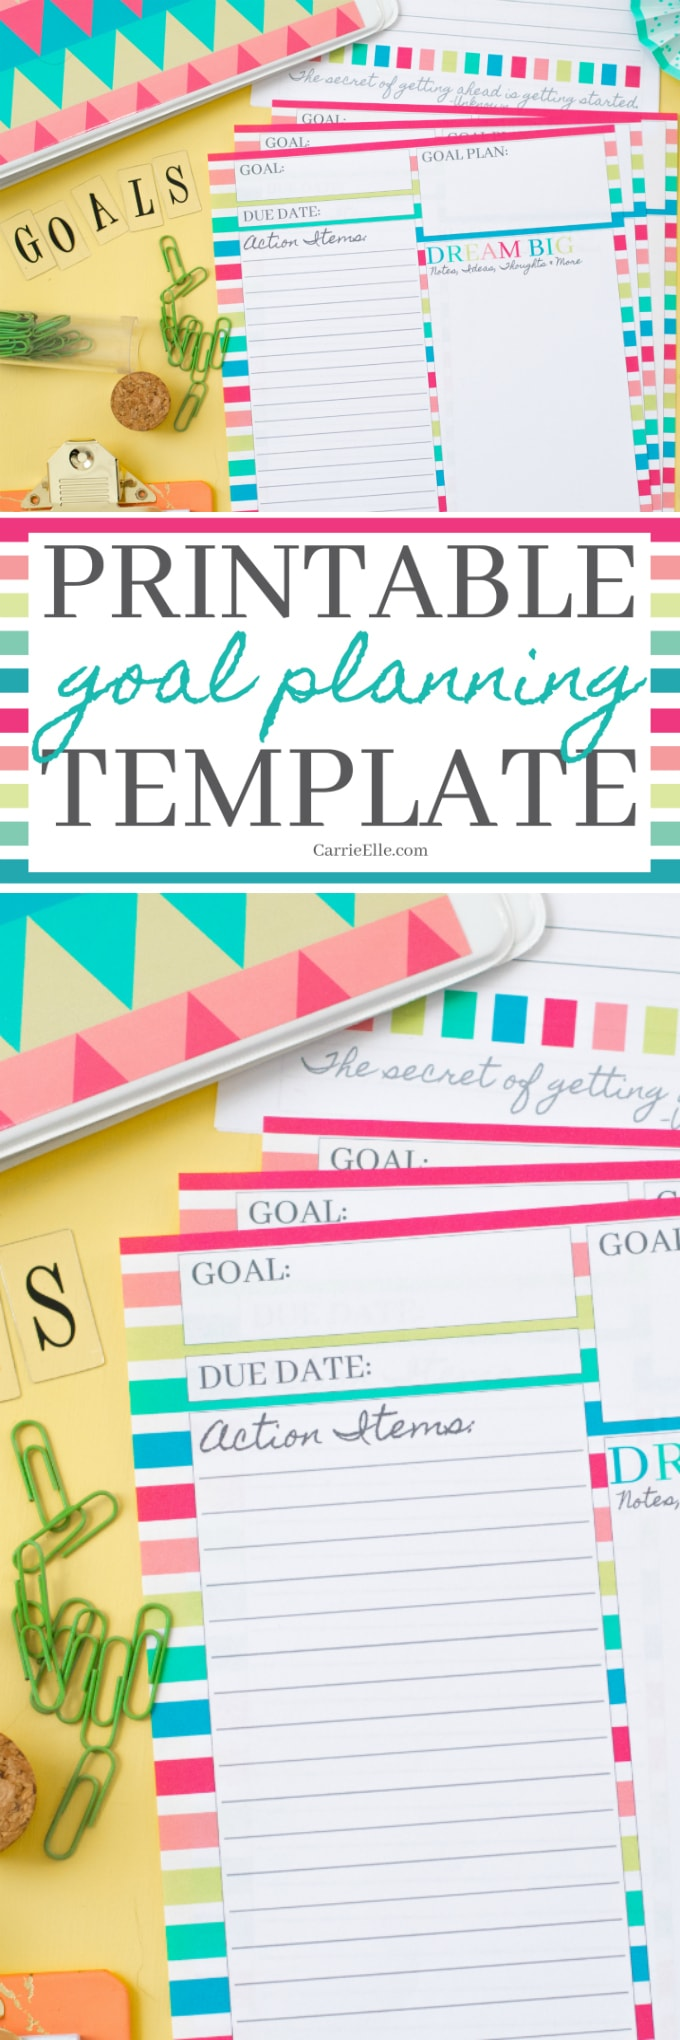 Printable Goal Planning Template